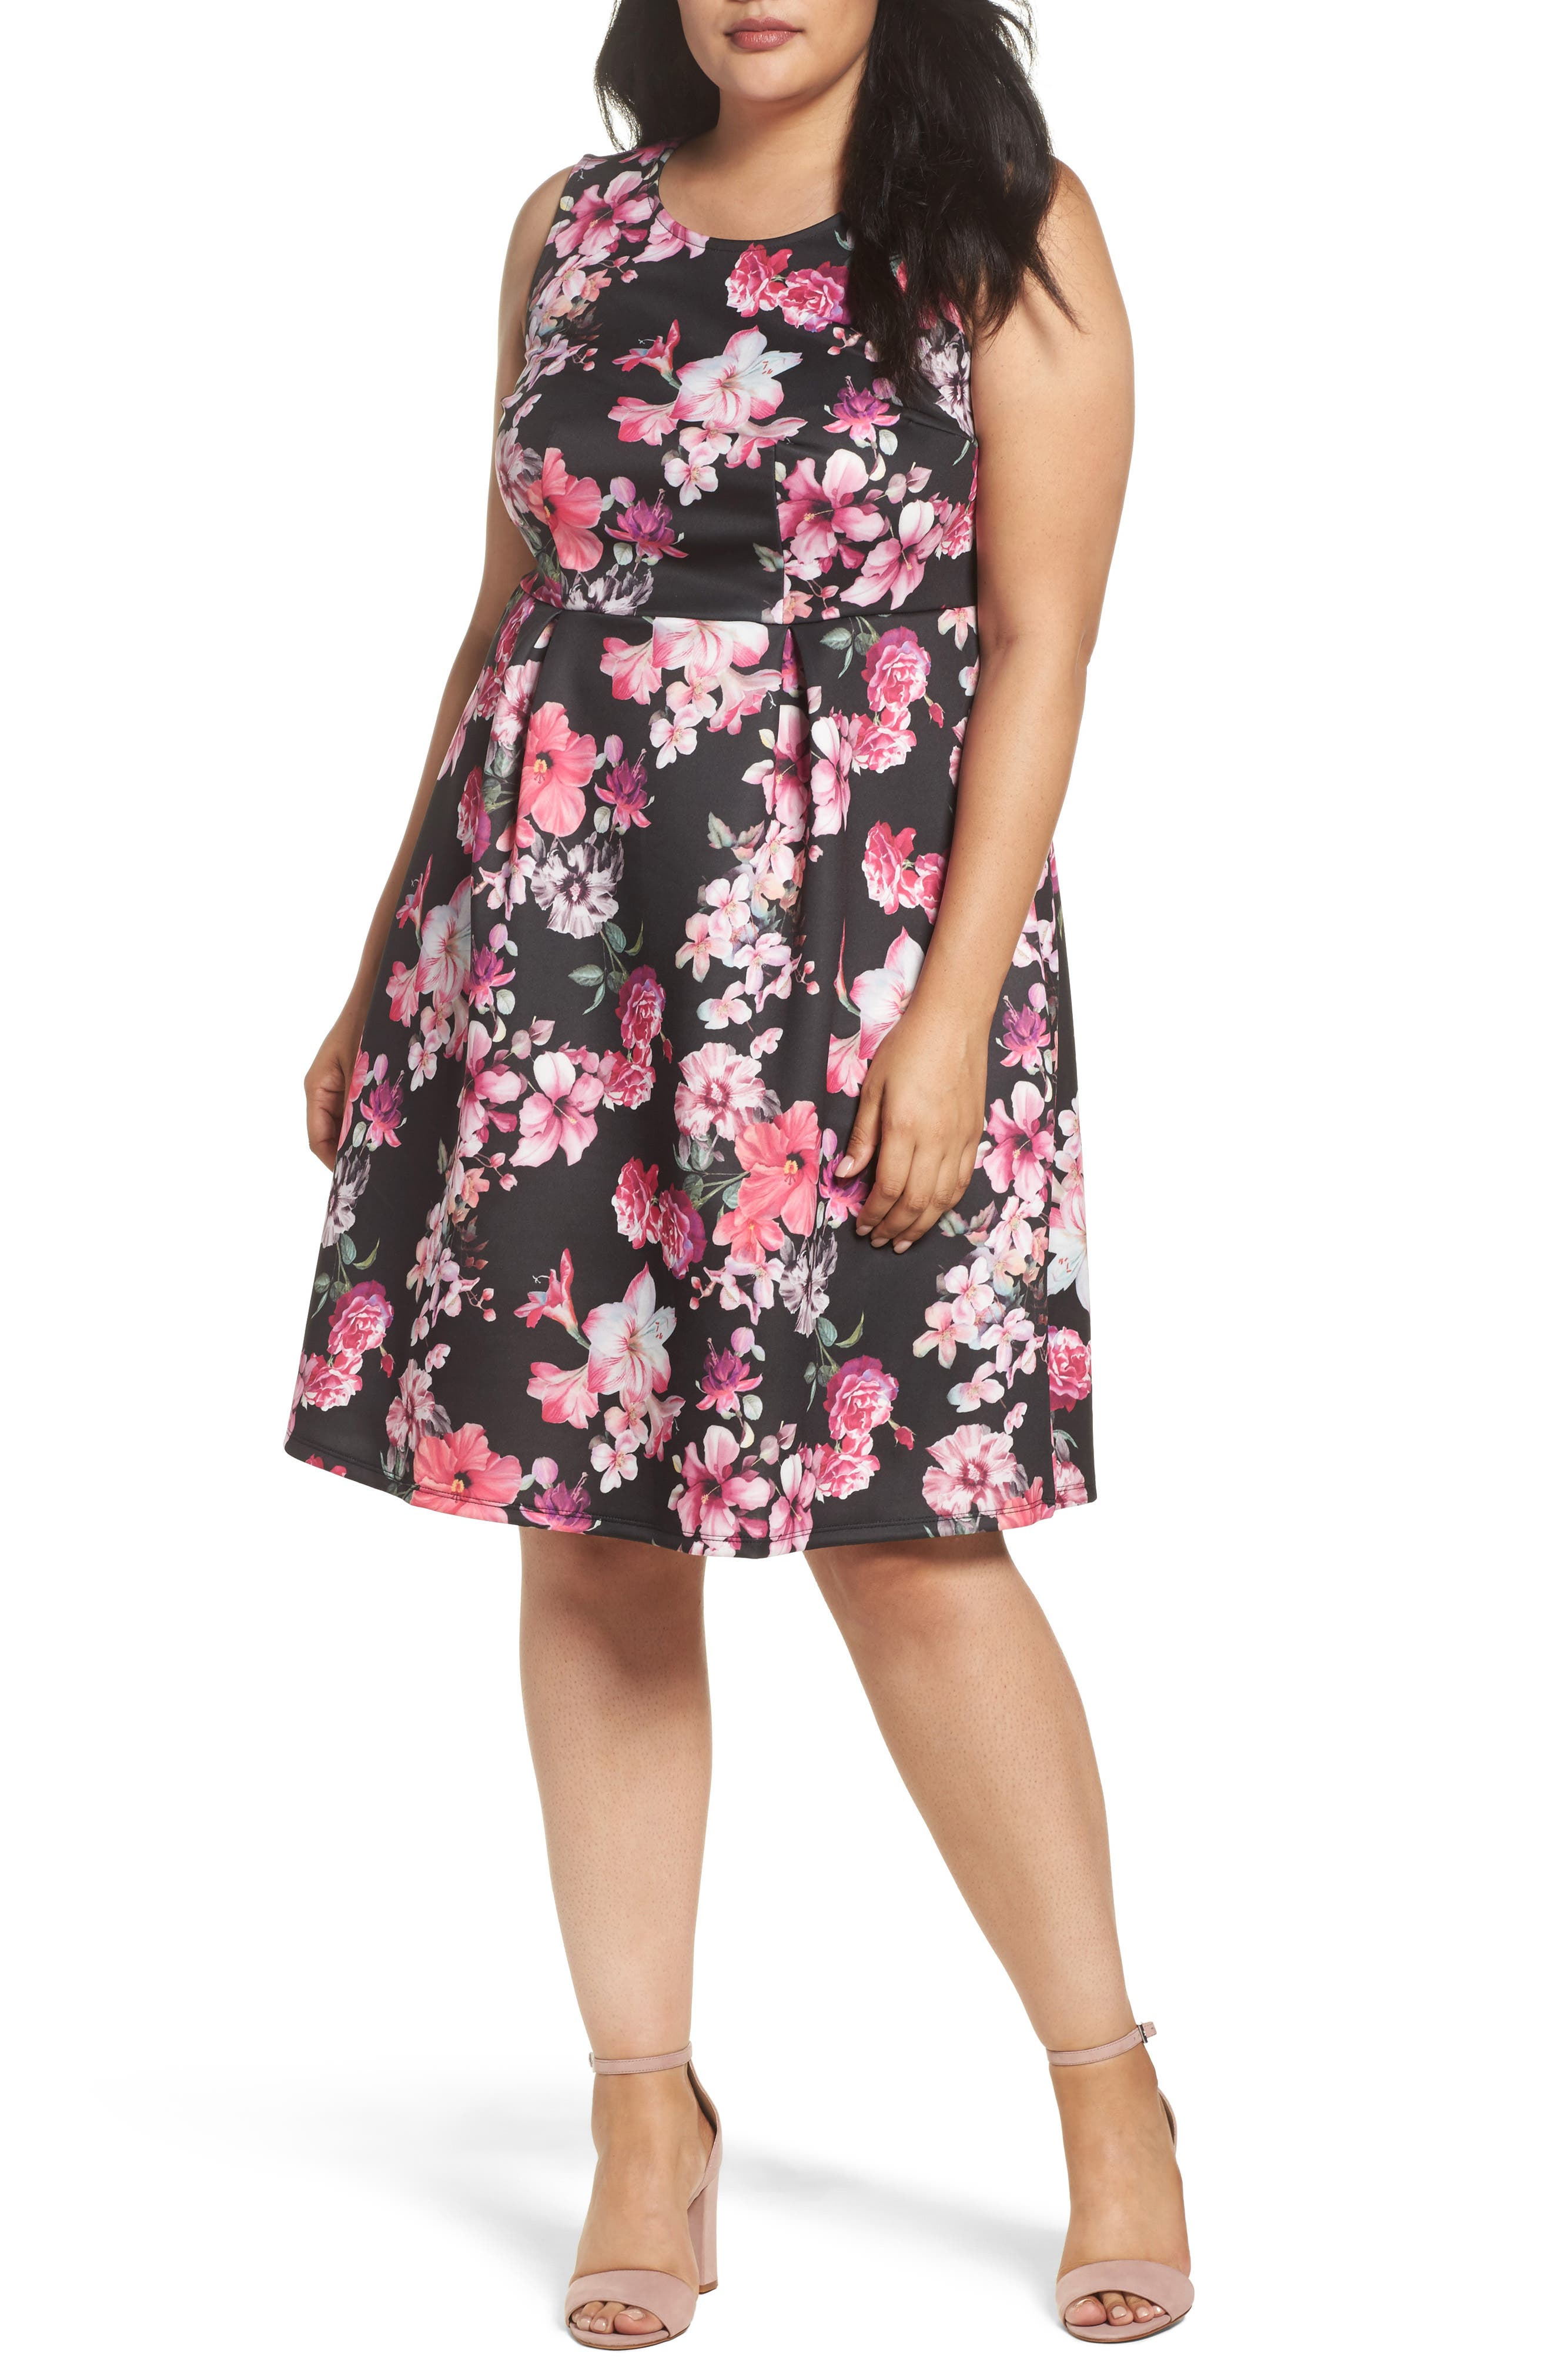 Alternate Image 1 Selected - Dorothy Perkins Floral Print Sleeveless Dress (Plus Size)